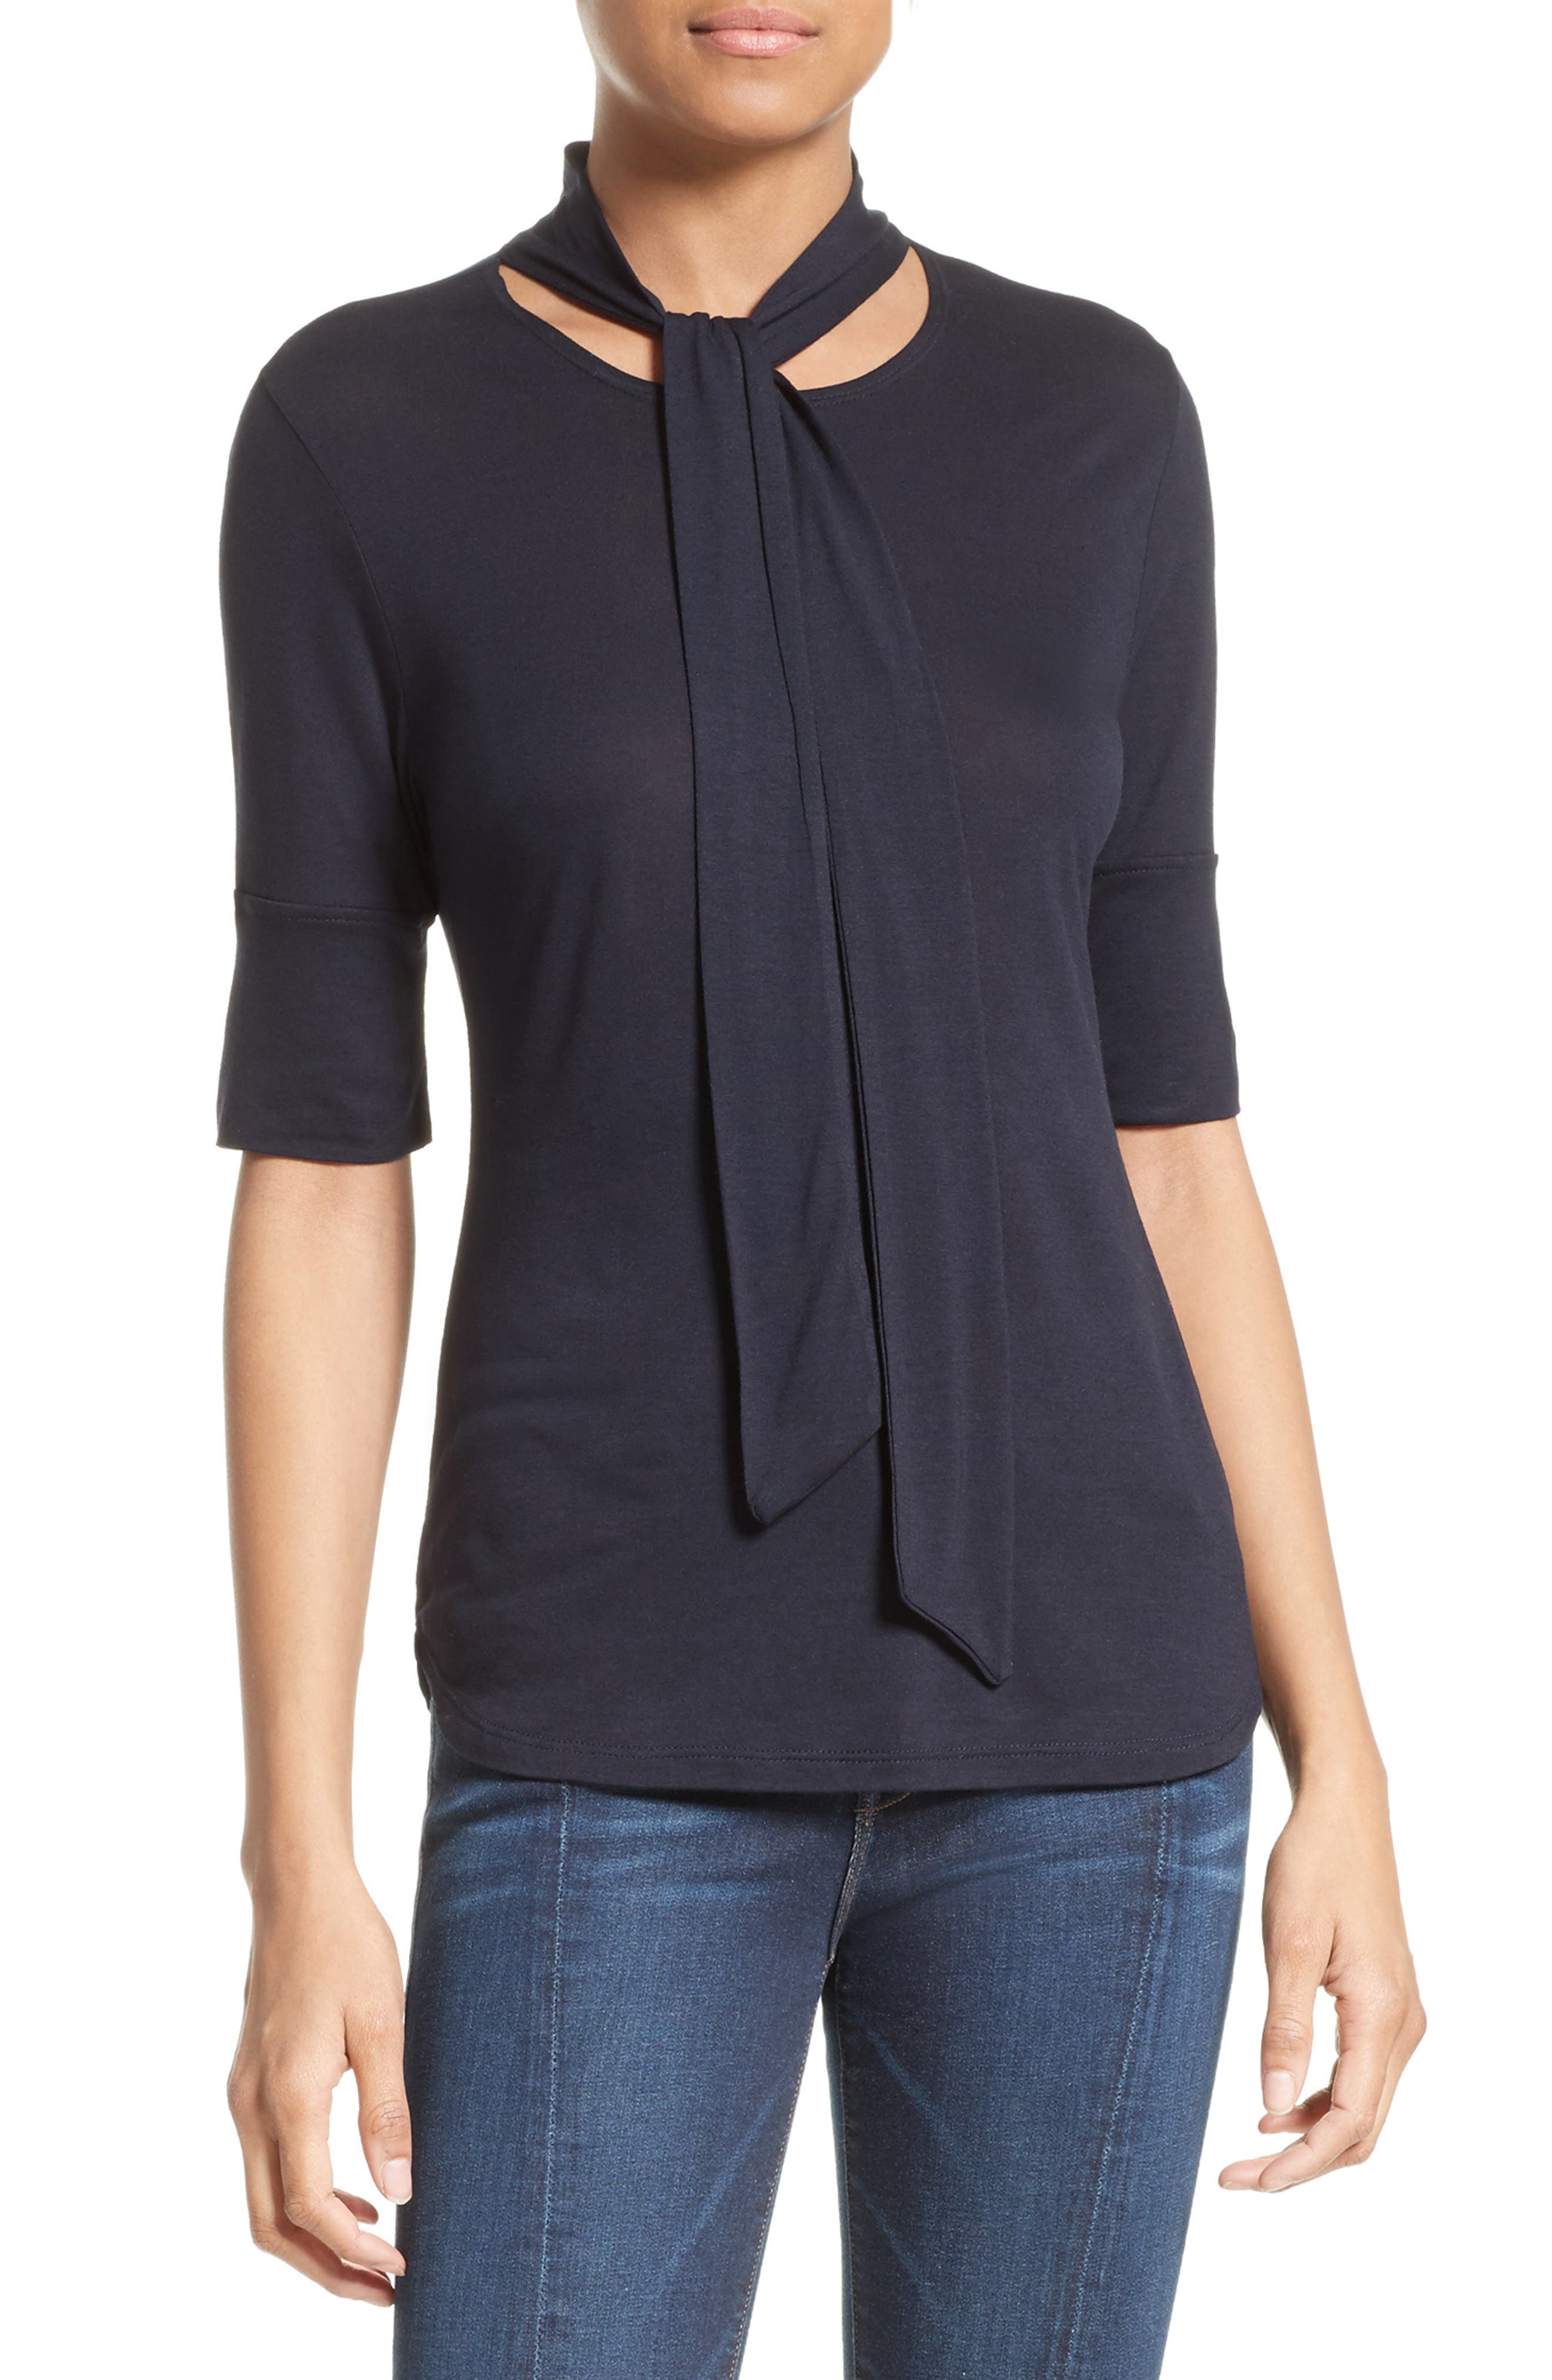 Alternate Image 1 Selected - FRAME Tie Neck Top